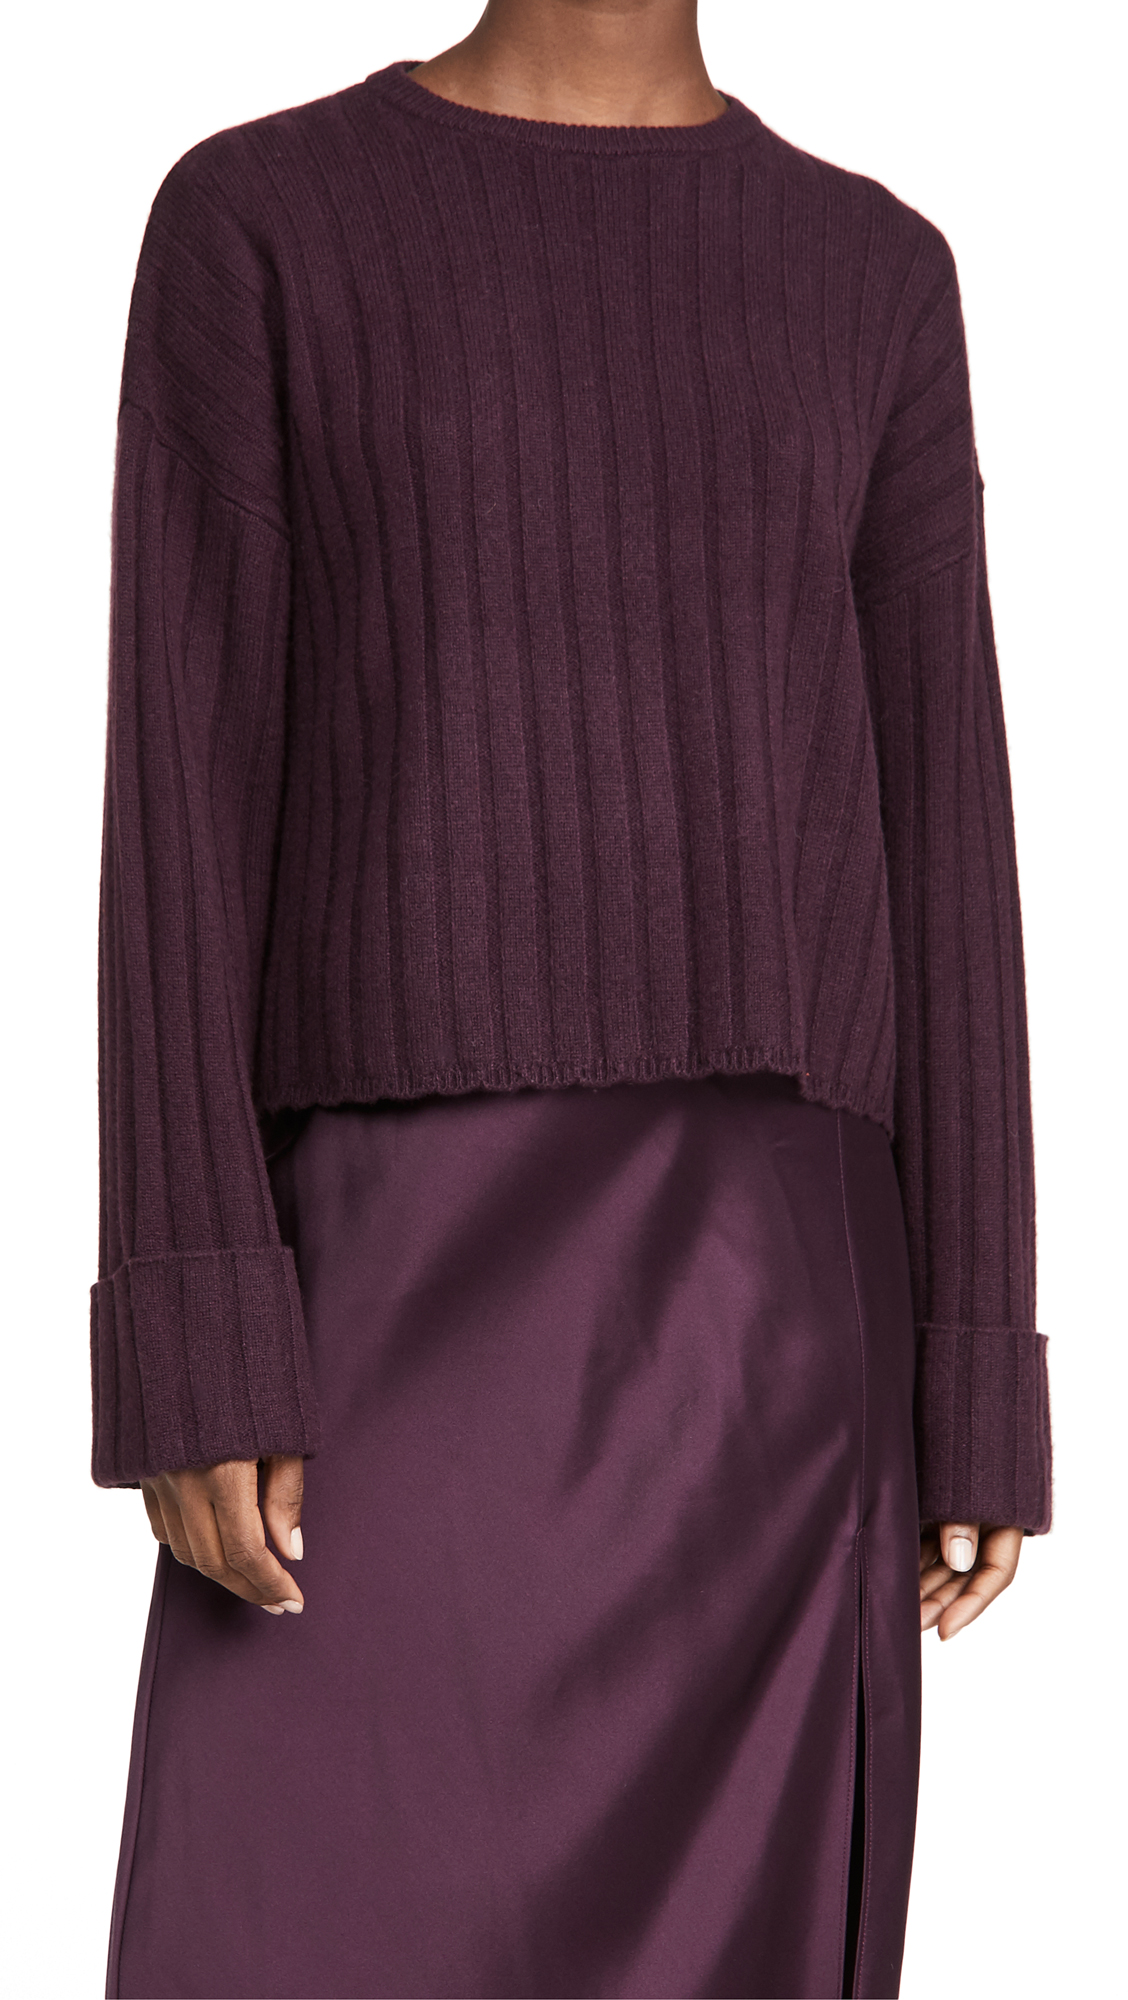 Sablyn Nathan Cashmere Sweater